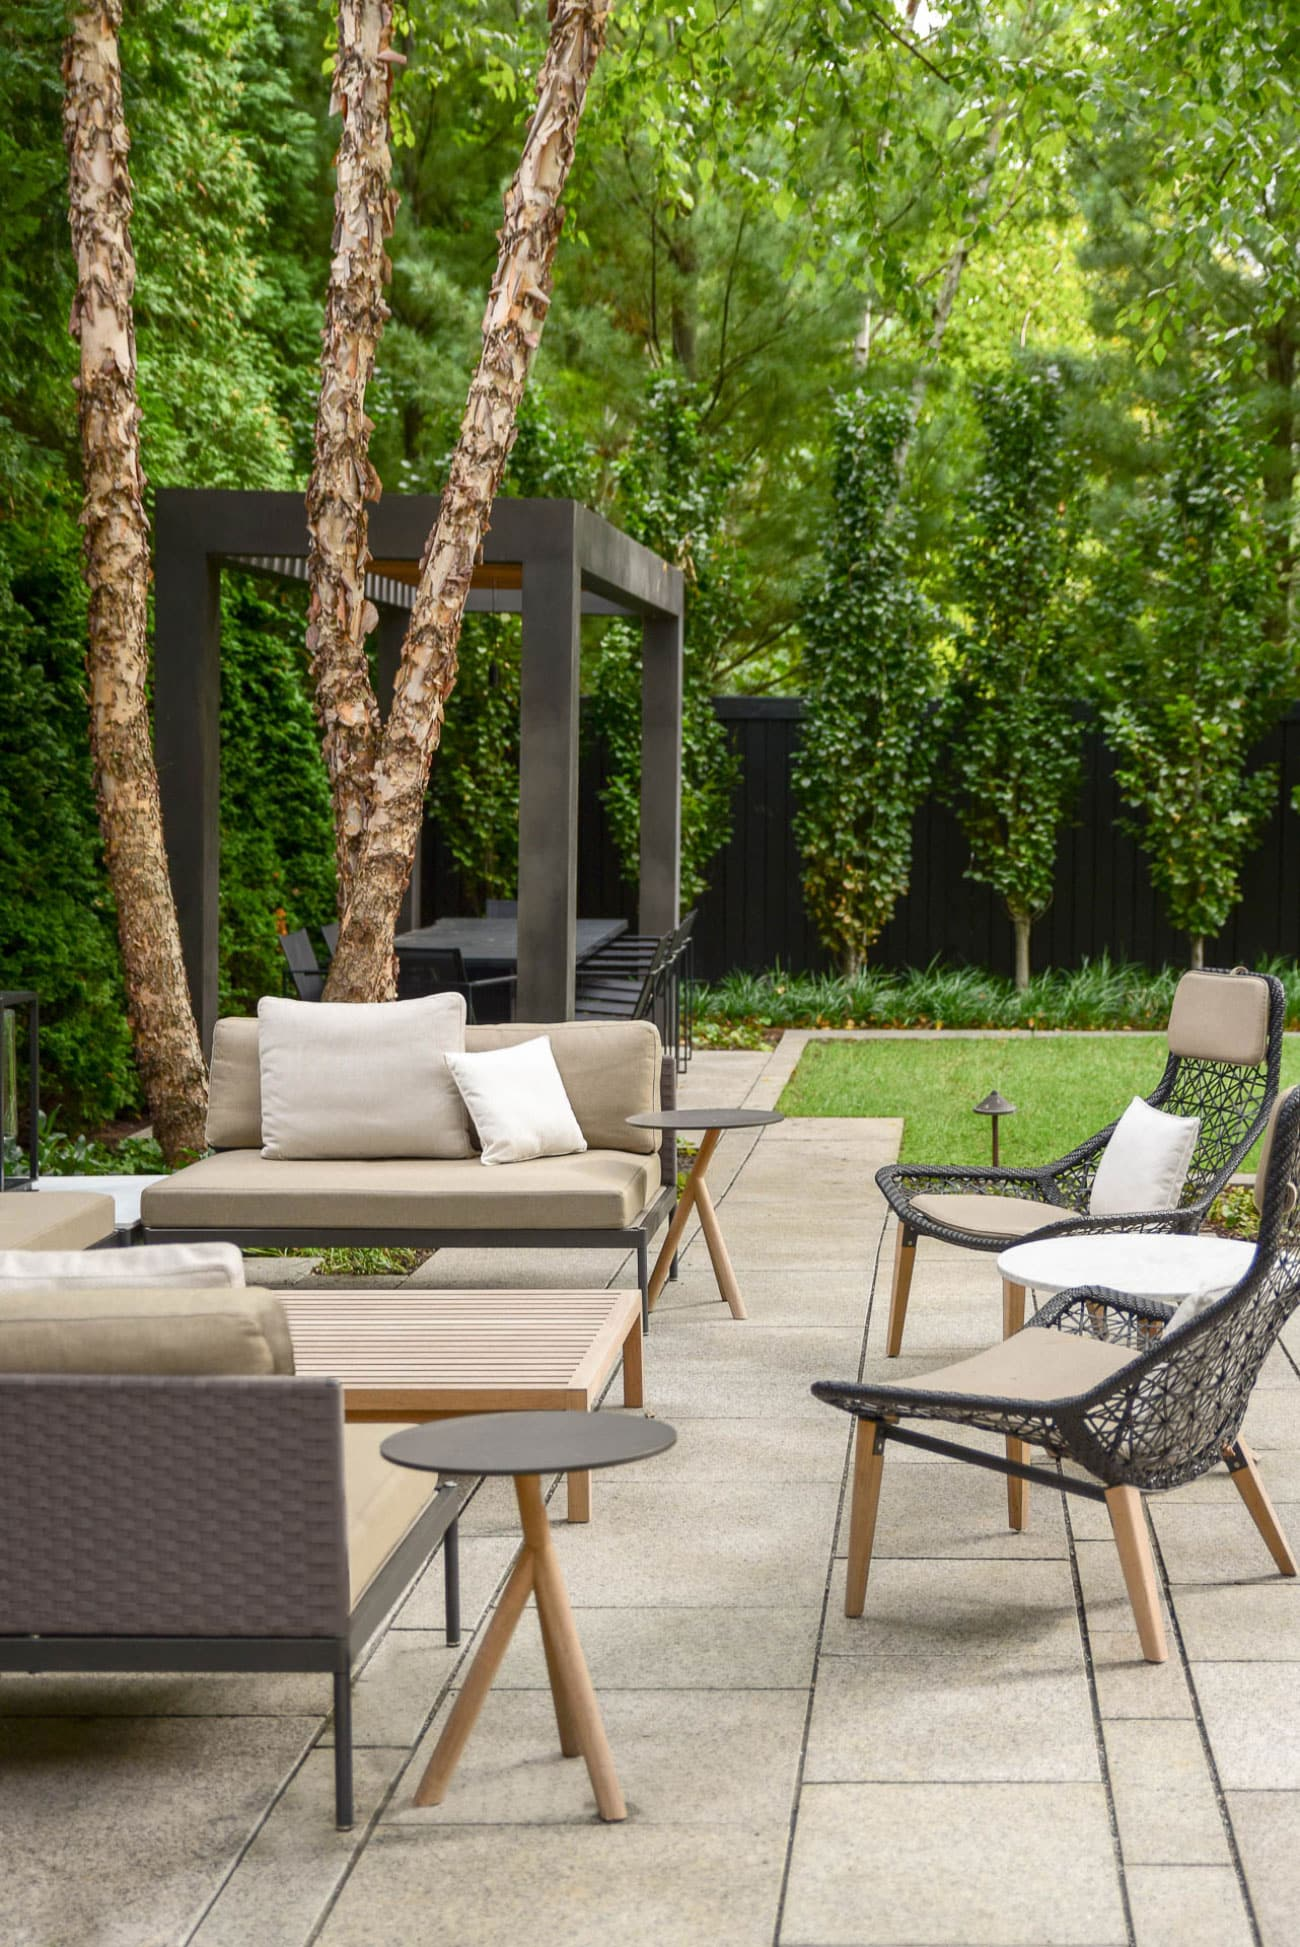 Designers Of The Best Contemporary Outdoor Furniture Think Outside The Box 1stdibs Introspective